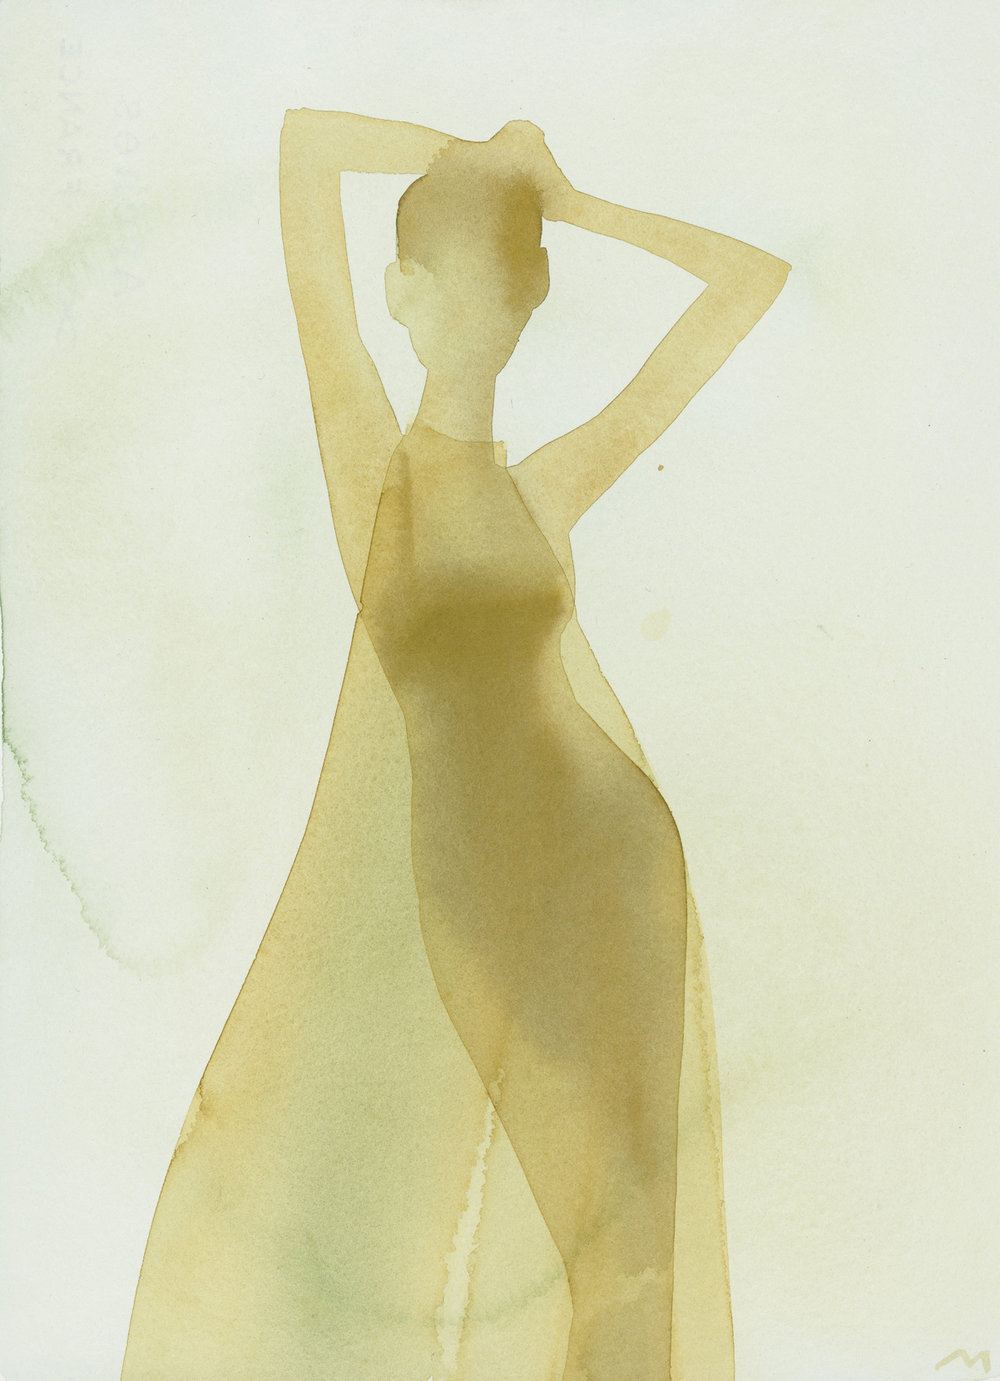 Mats Gustafson   Silhouette (Sheer evening dress)  For Tiffany & Co 2001 Watercolor 38 x 28,5 cm